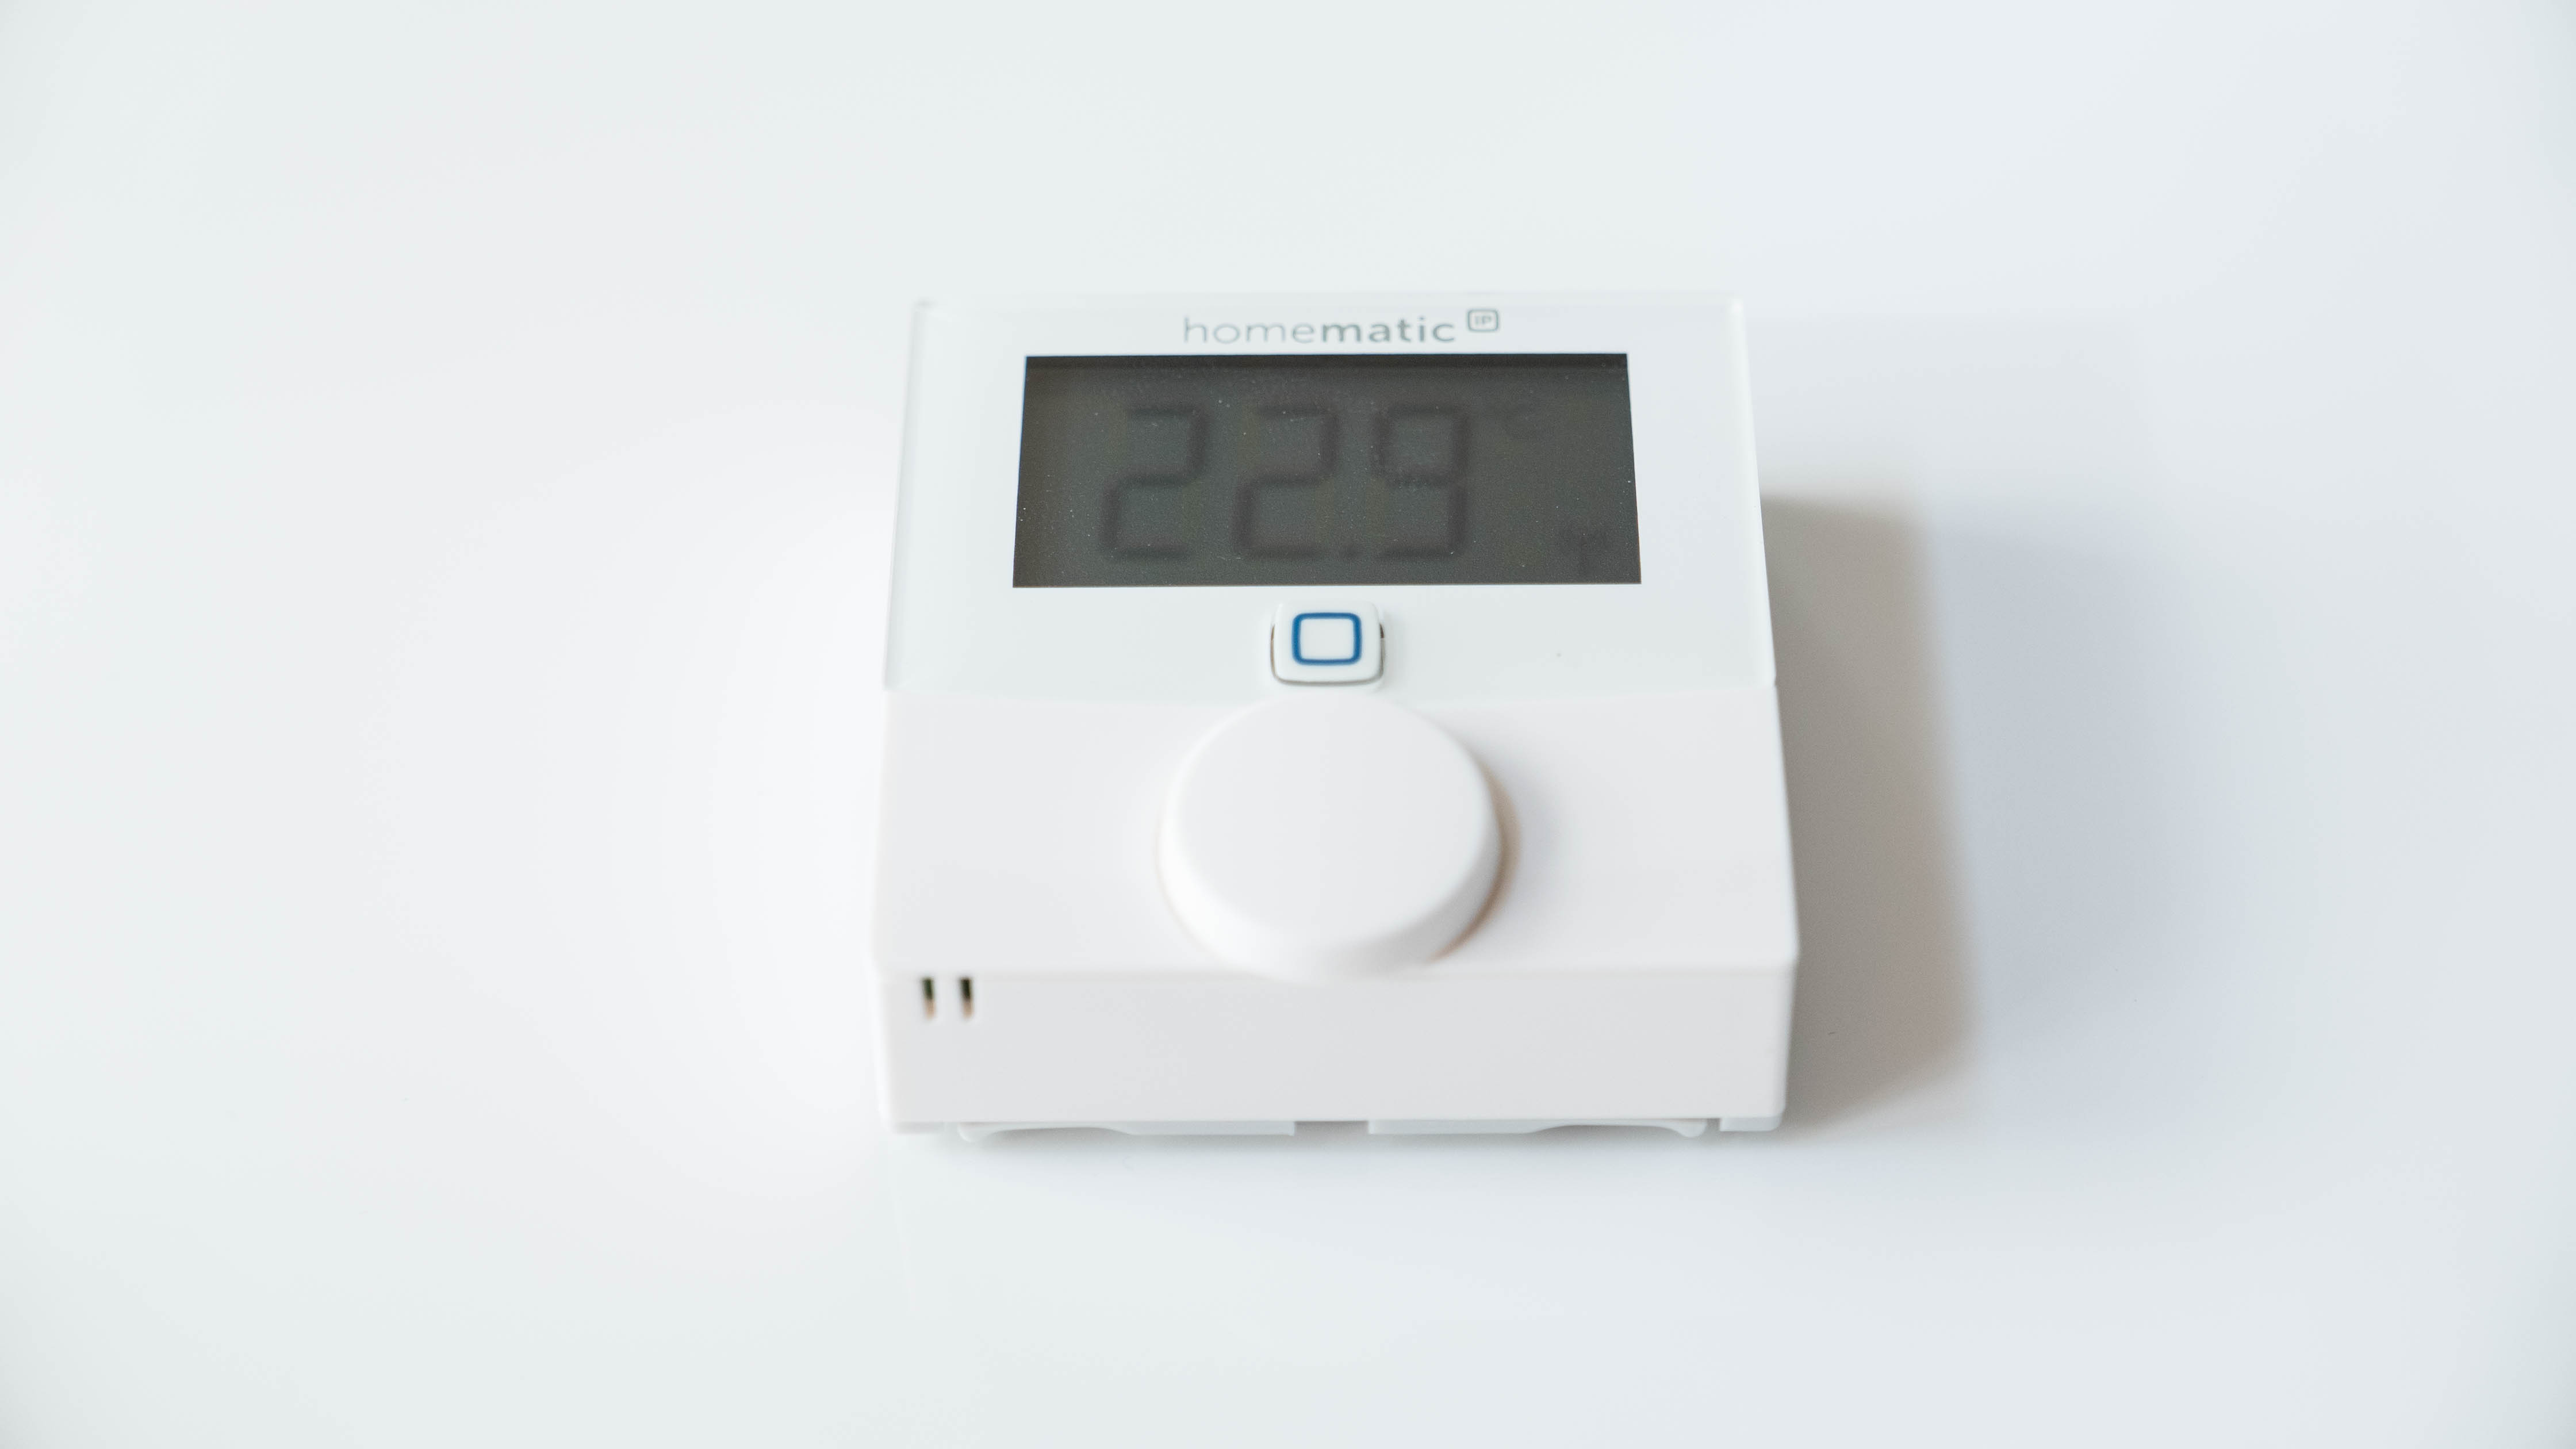 Homematic-IP-Wandthermostat-unten